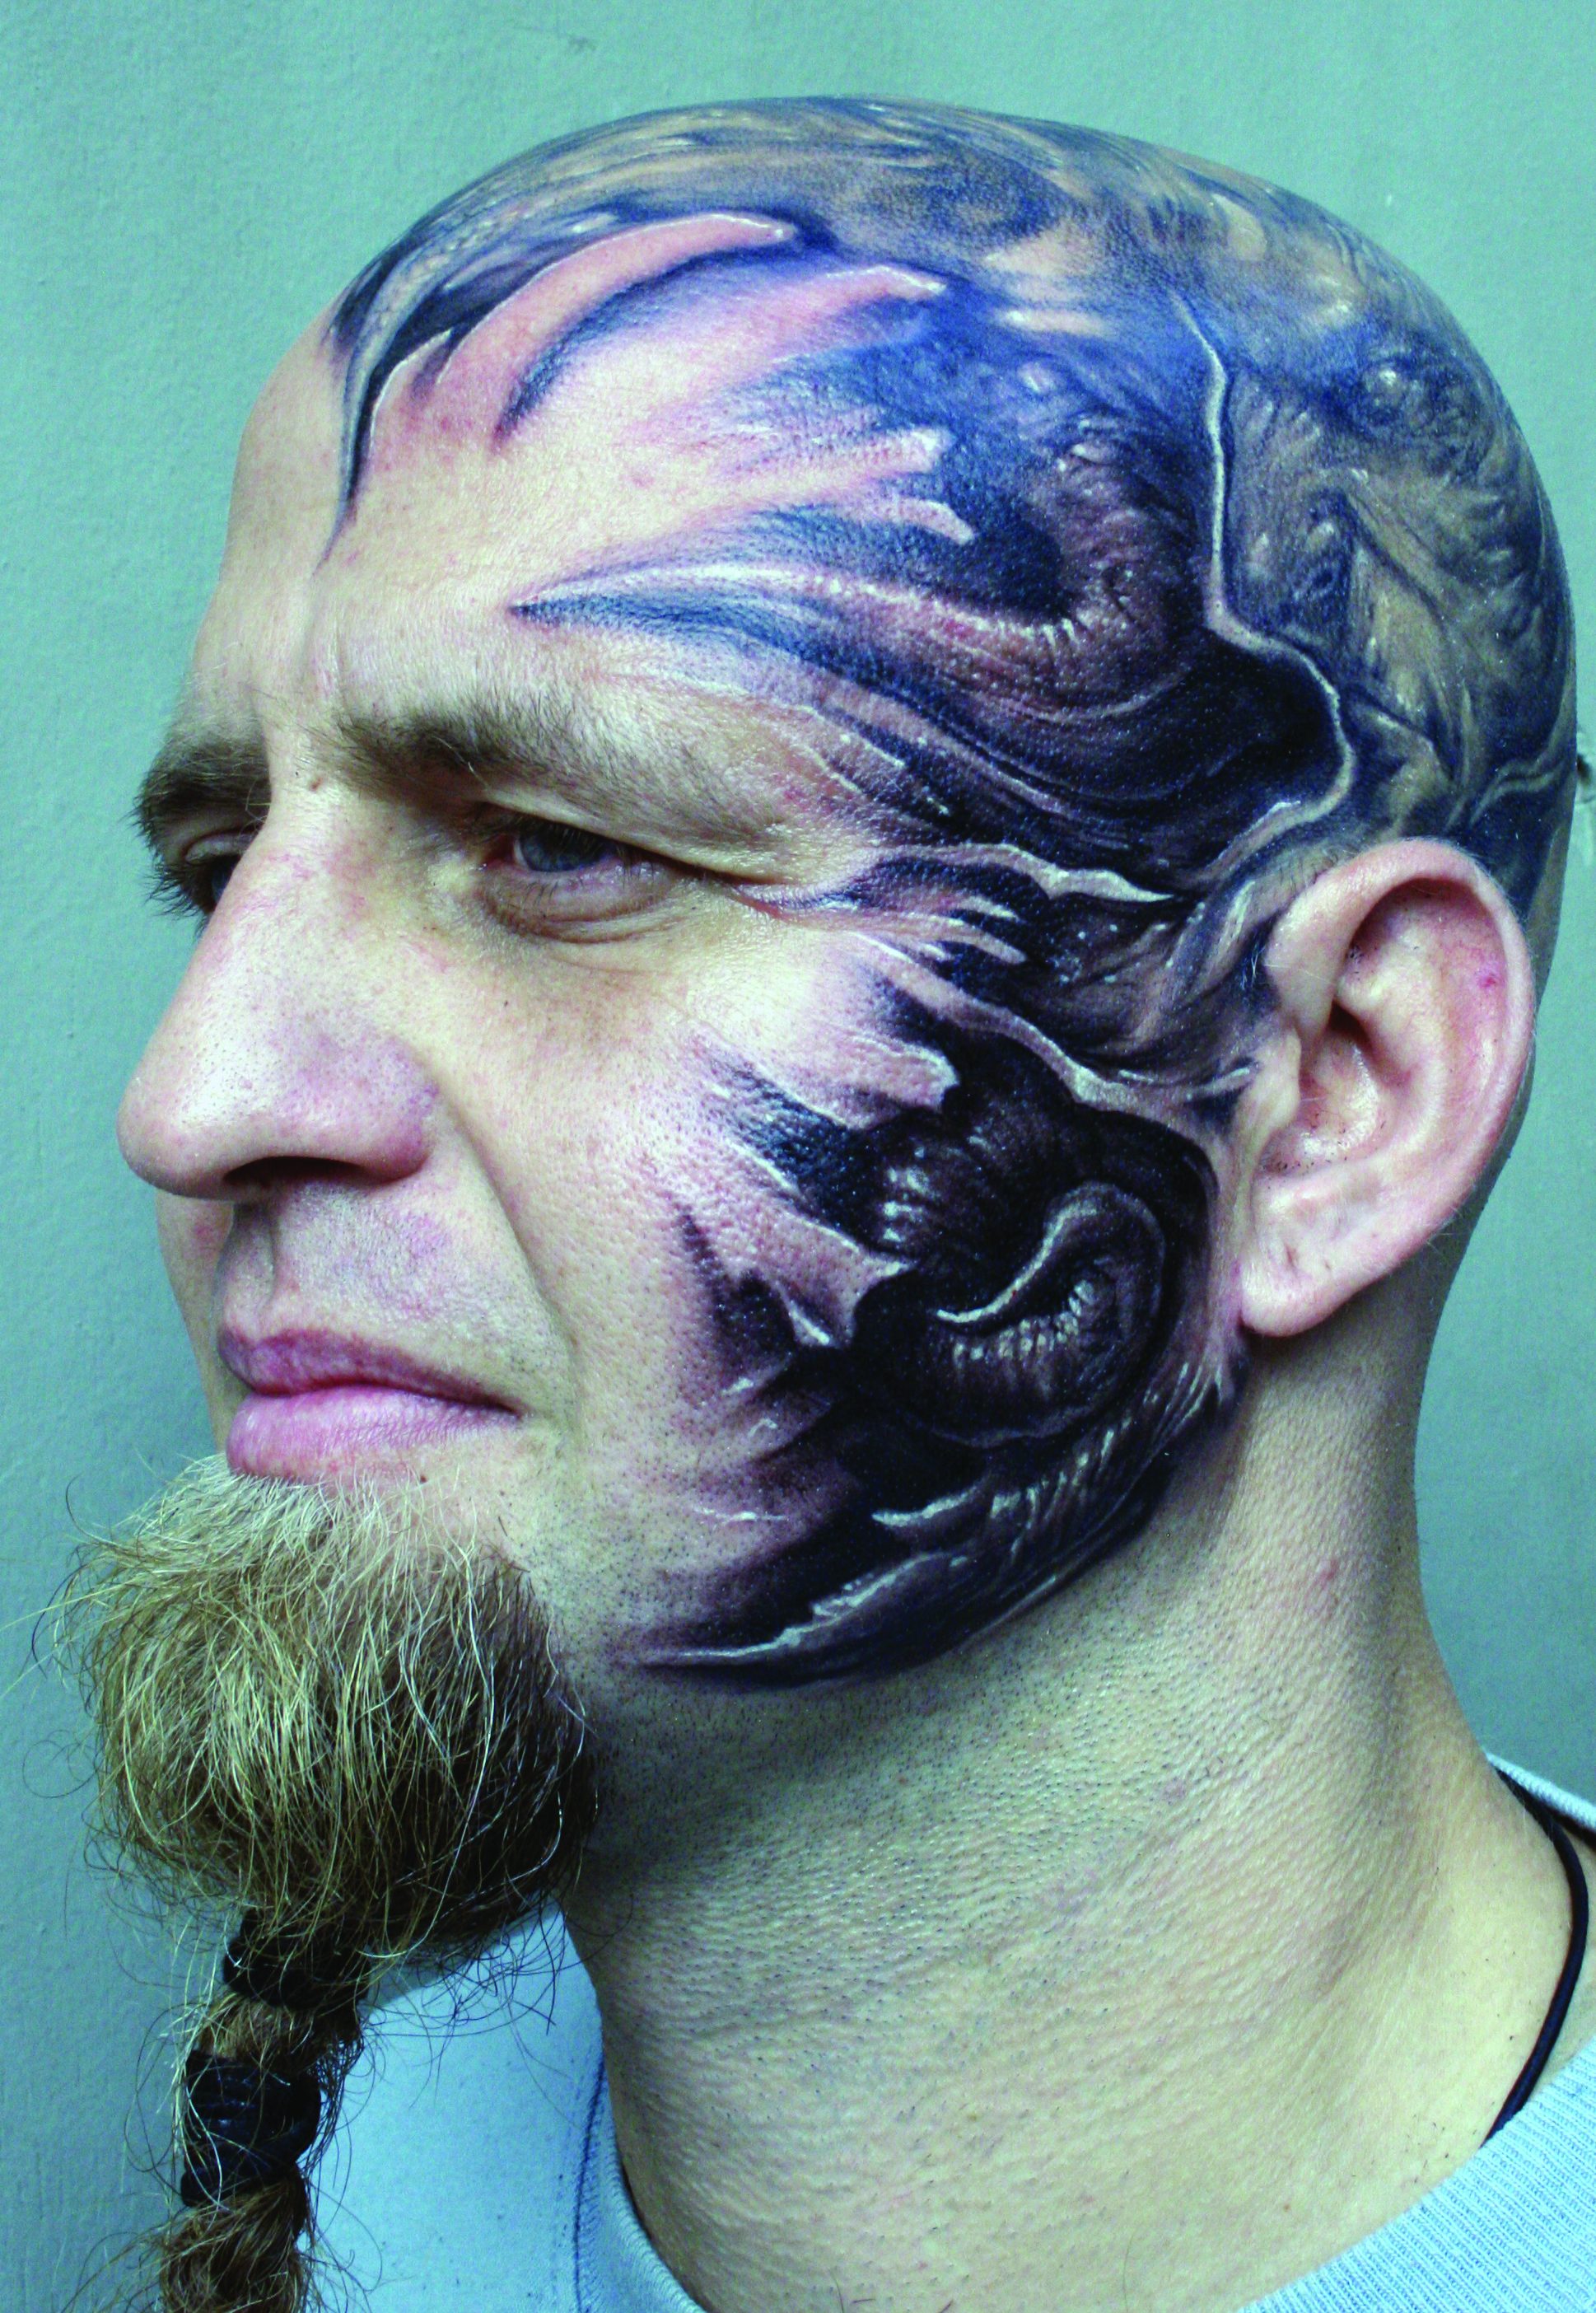 Biomechanical Alien Tattoo On Head And Face